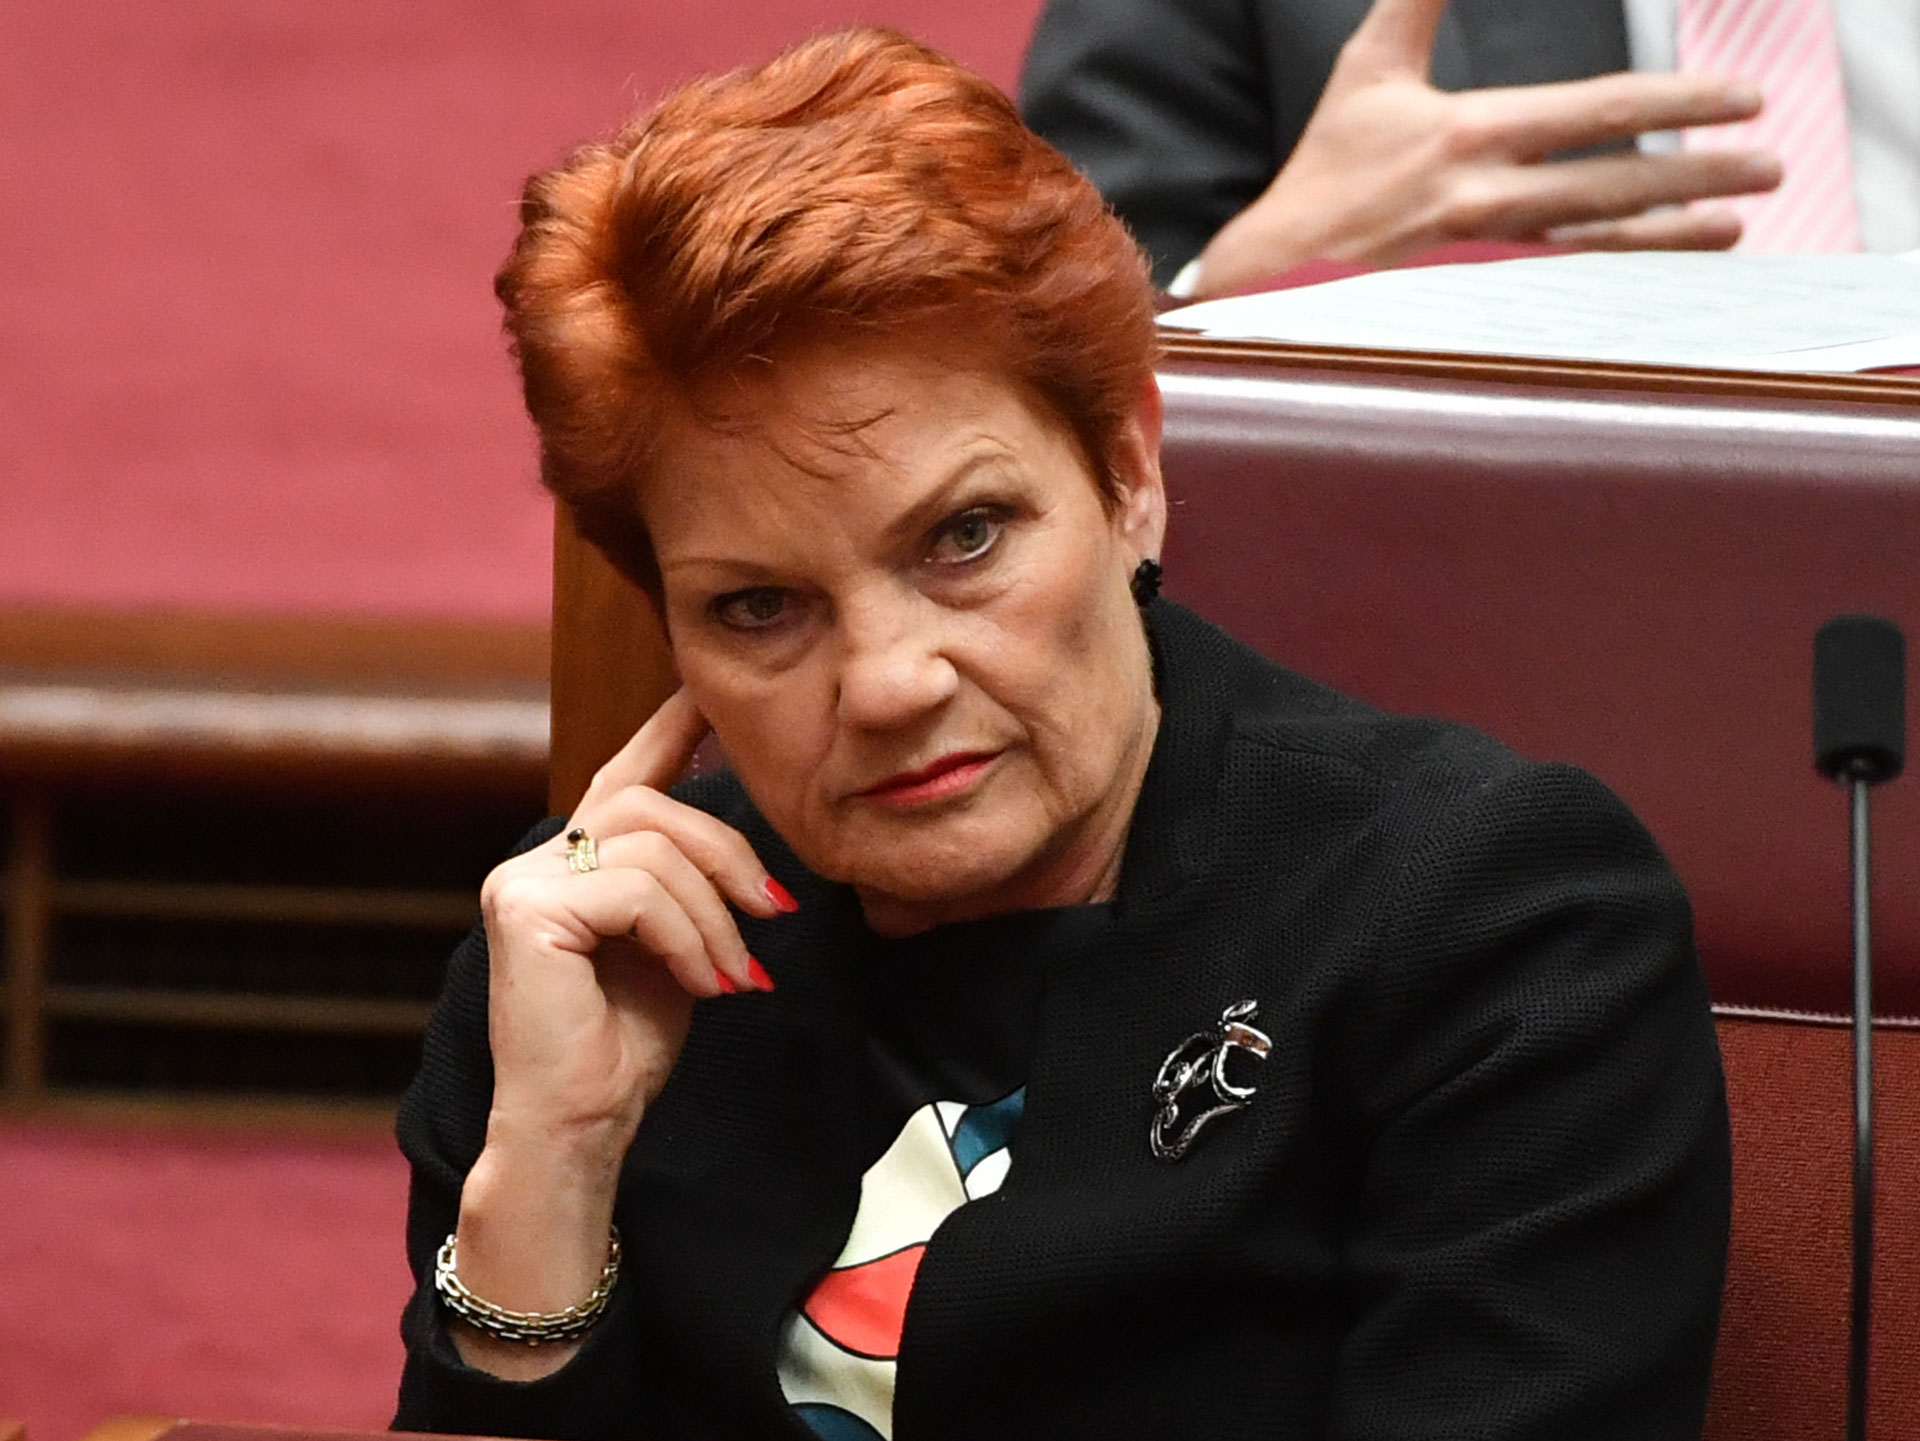 Pauline Hanson's autism comments raise questions about education resources